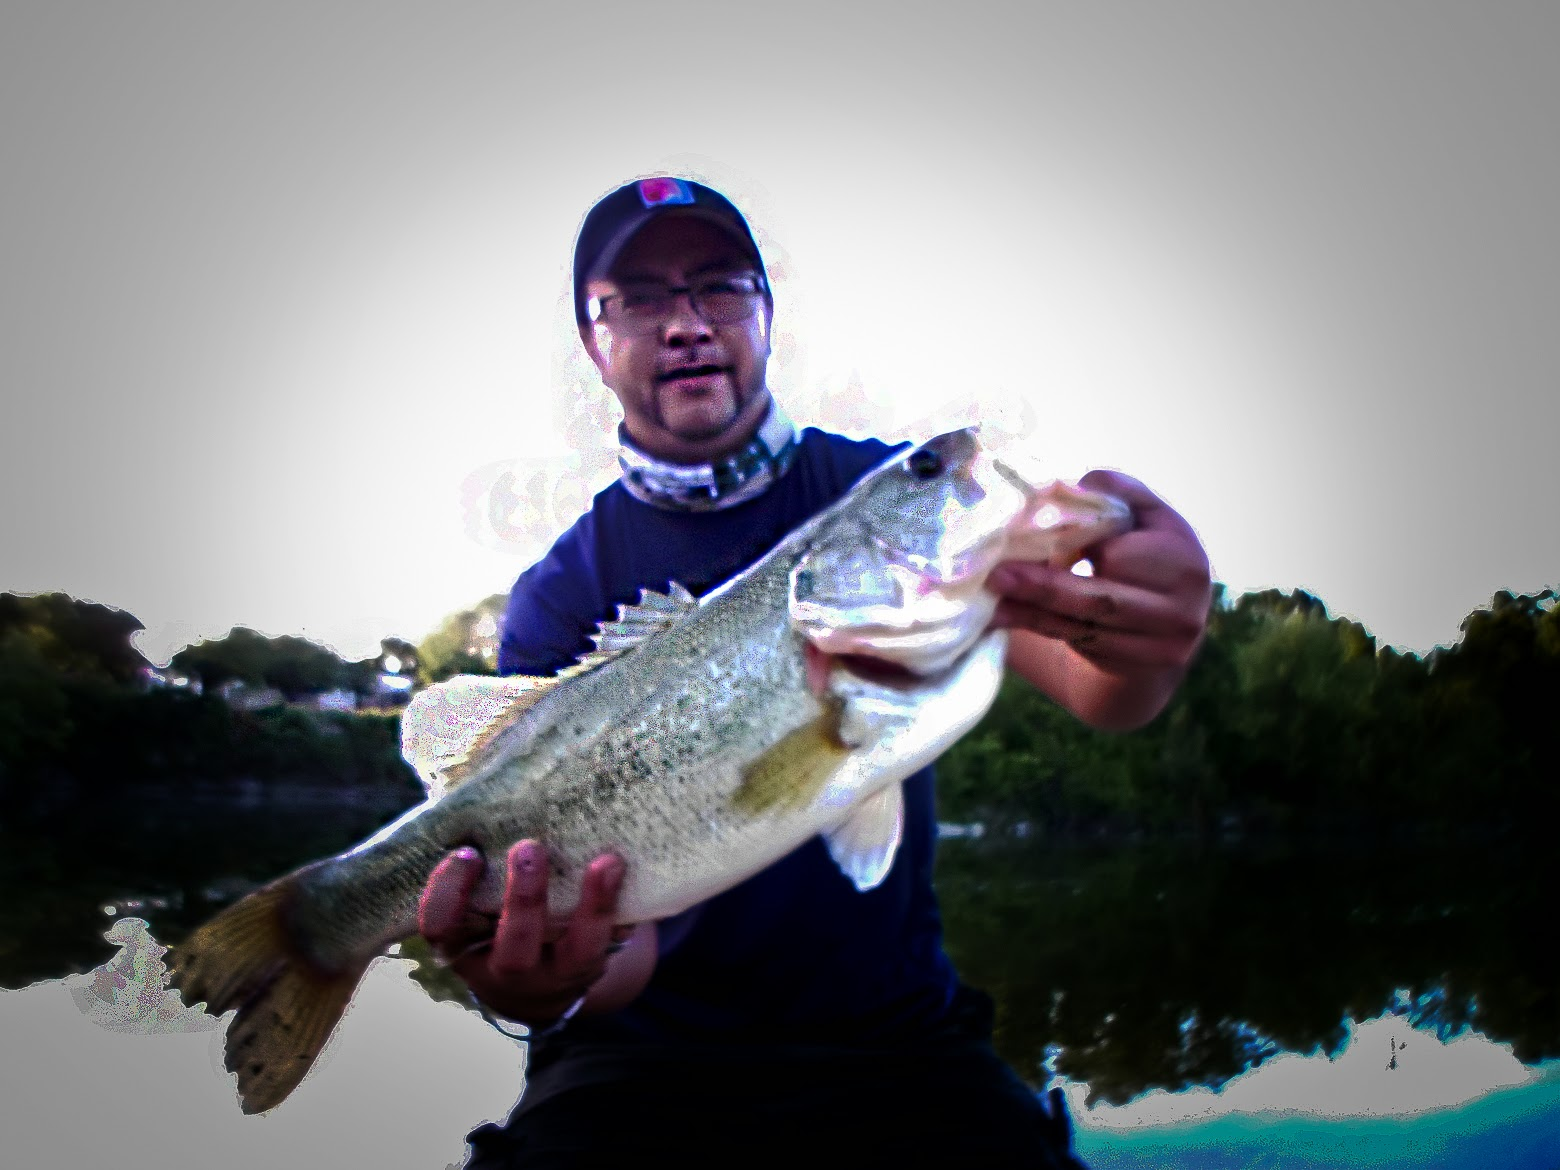 Bass fishing round rock west park austin texas bass fishing for Austin bass fishing